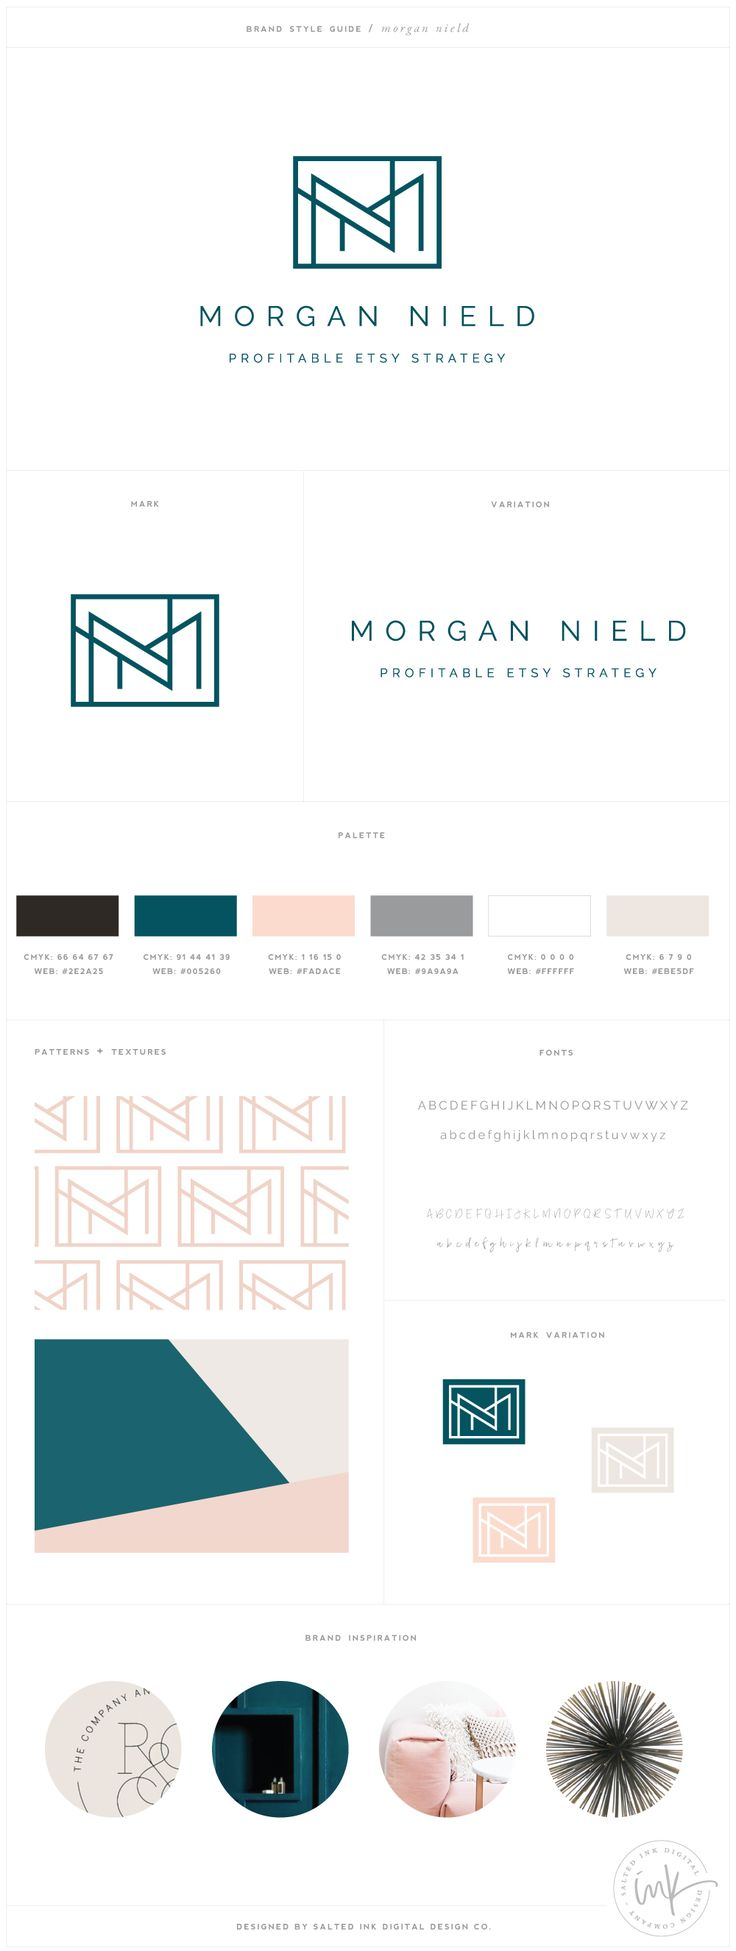 Minimalist + modern geometric logo design for morgannield.com by SaltedInk…